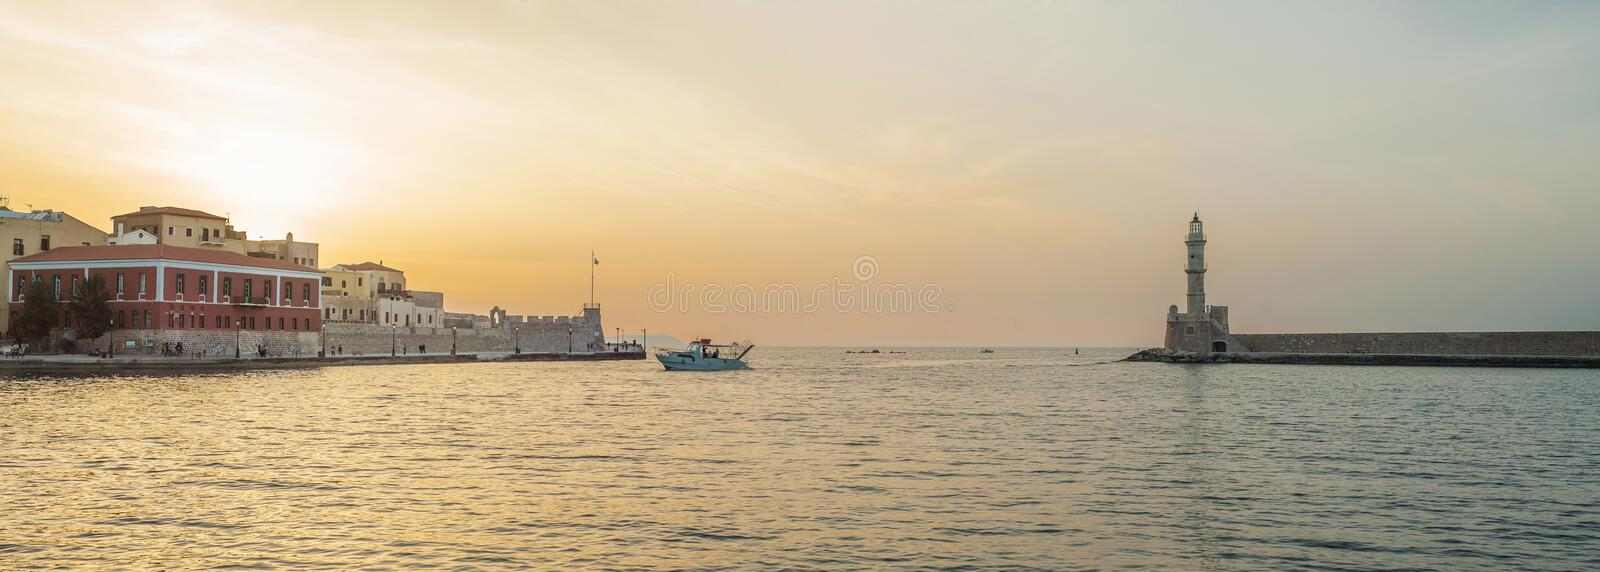 Greece, Crete, Chania landscape sunset light royalty free stock photography